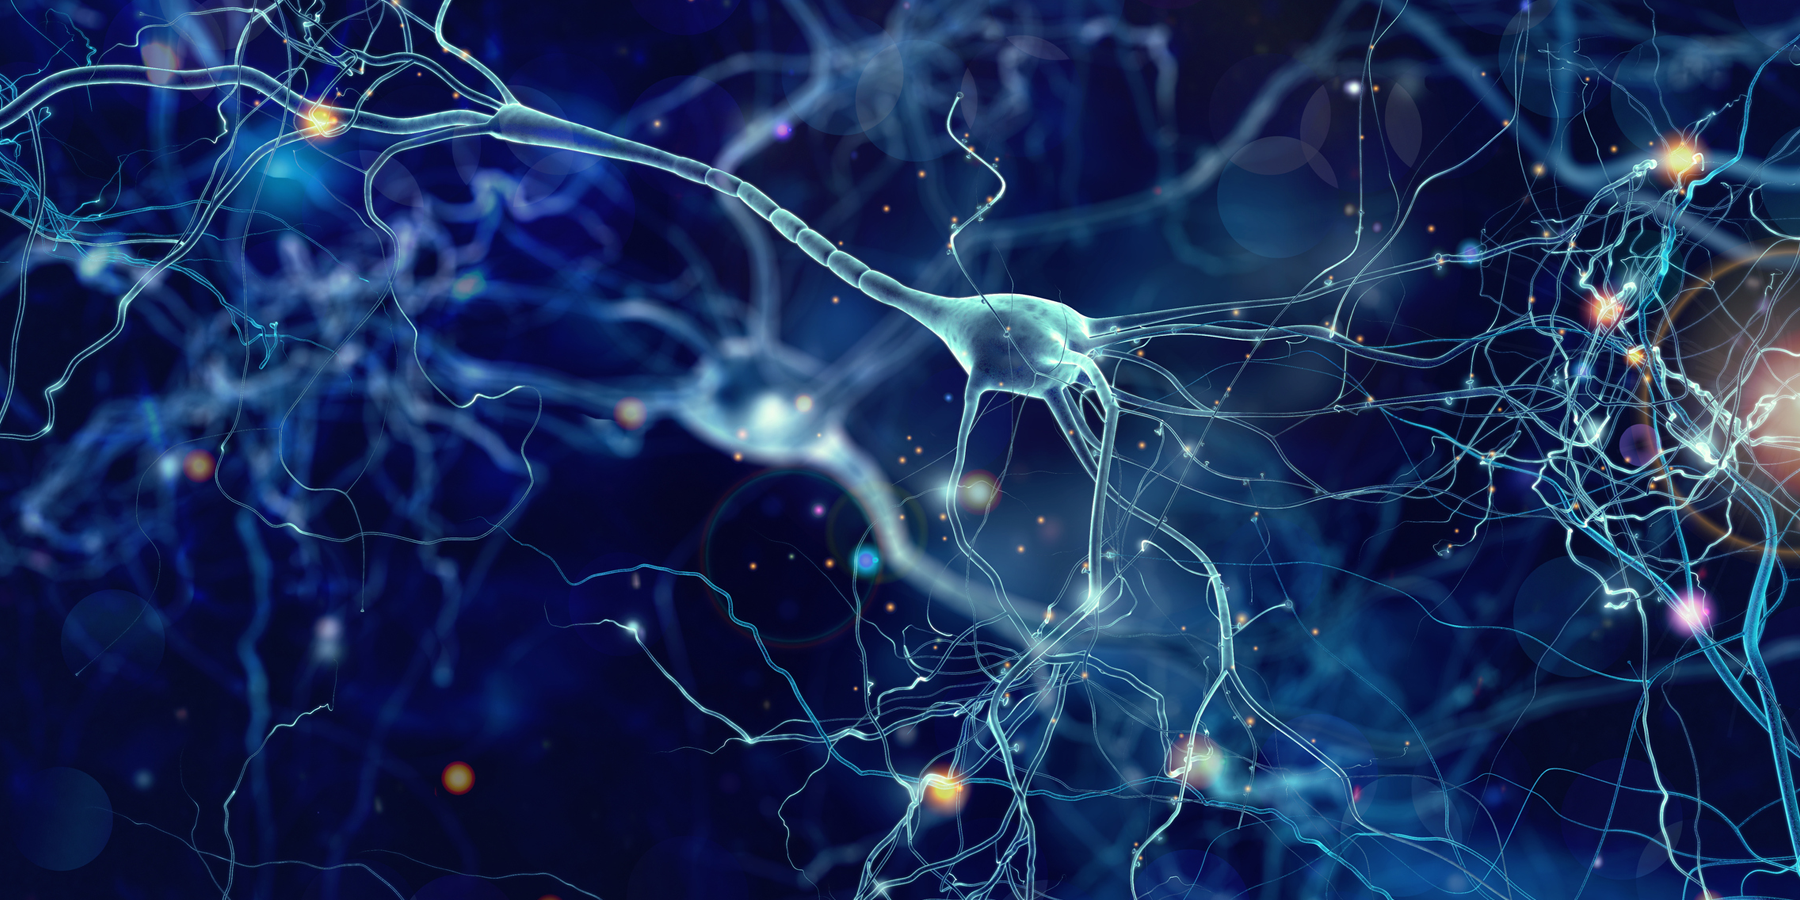 Study: The Speed Neurons Fire Impacts Their Ability to Synchronize